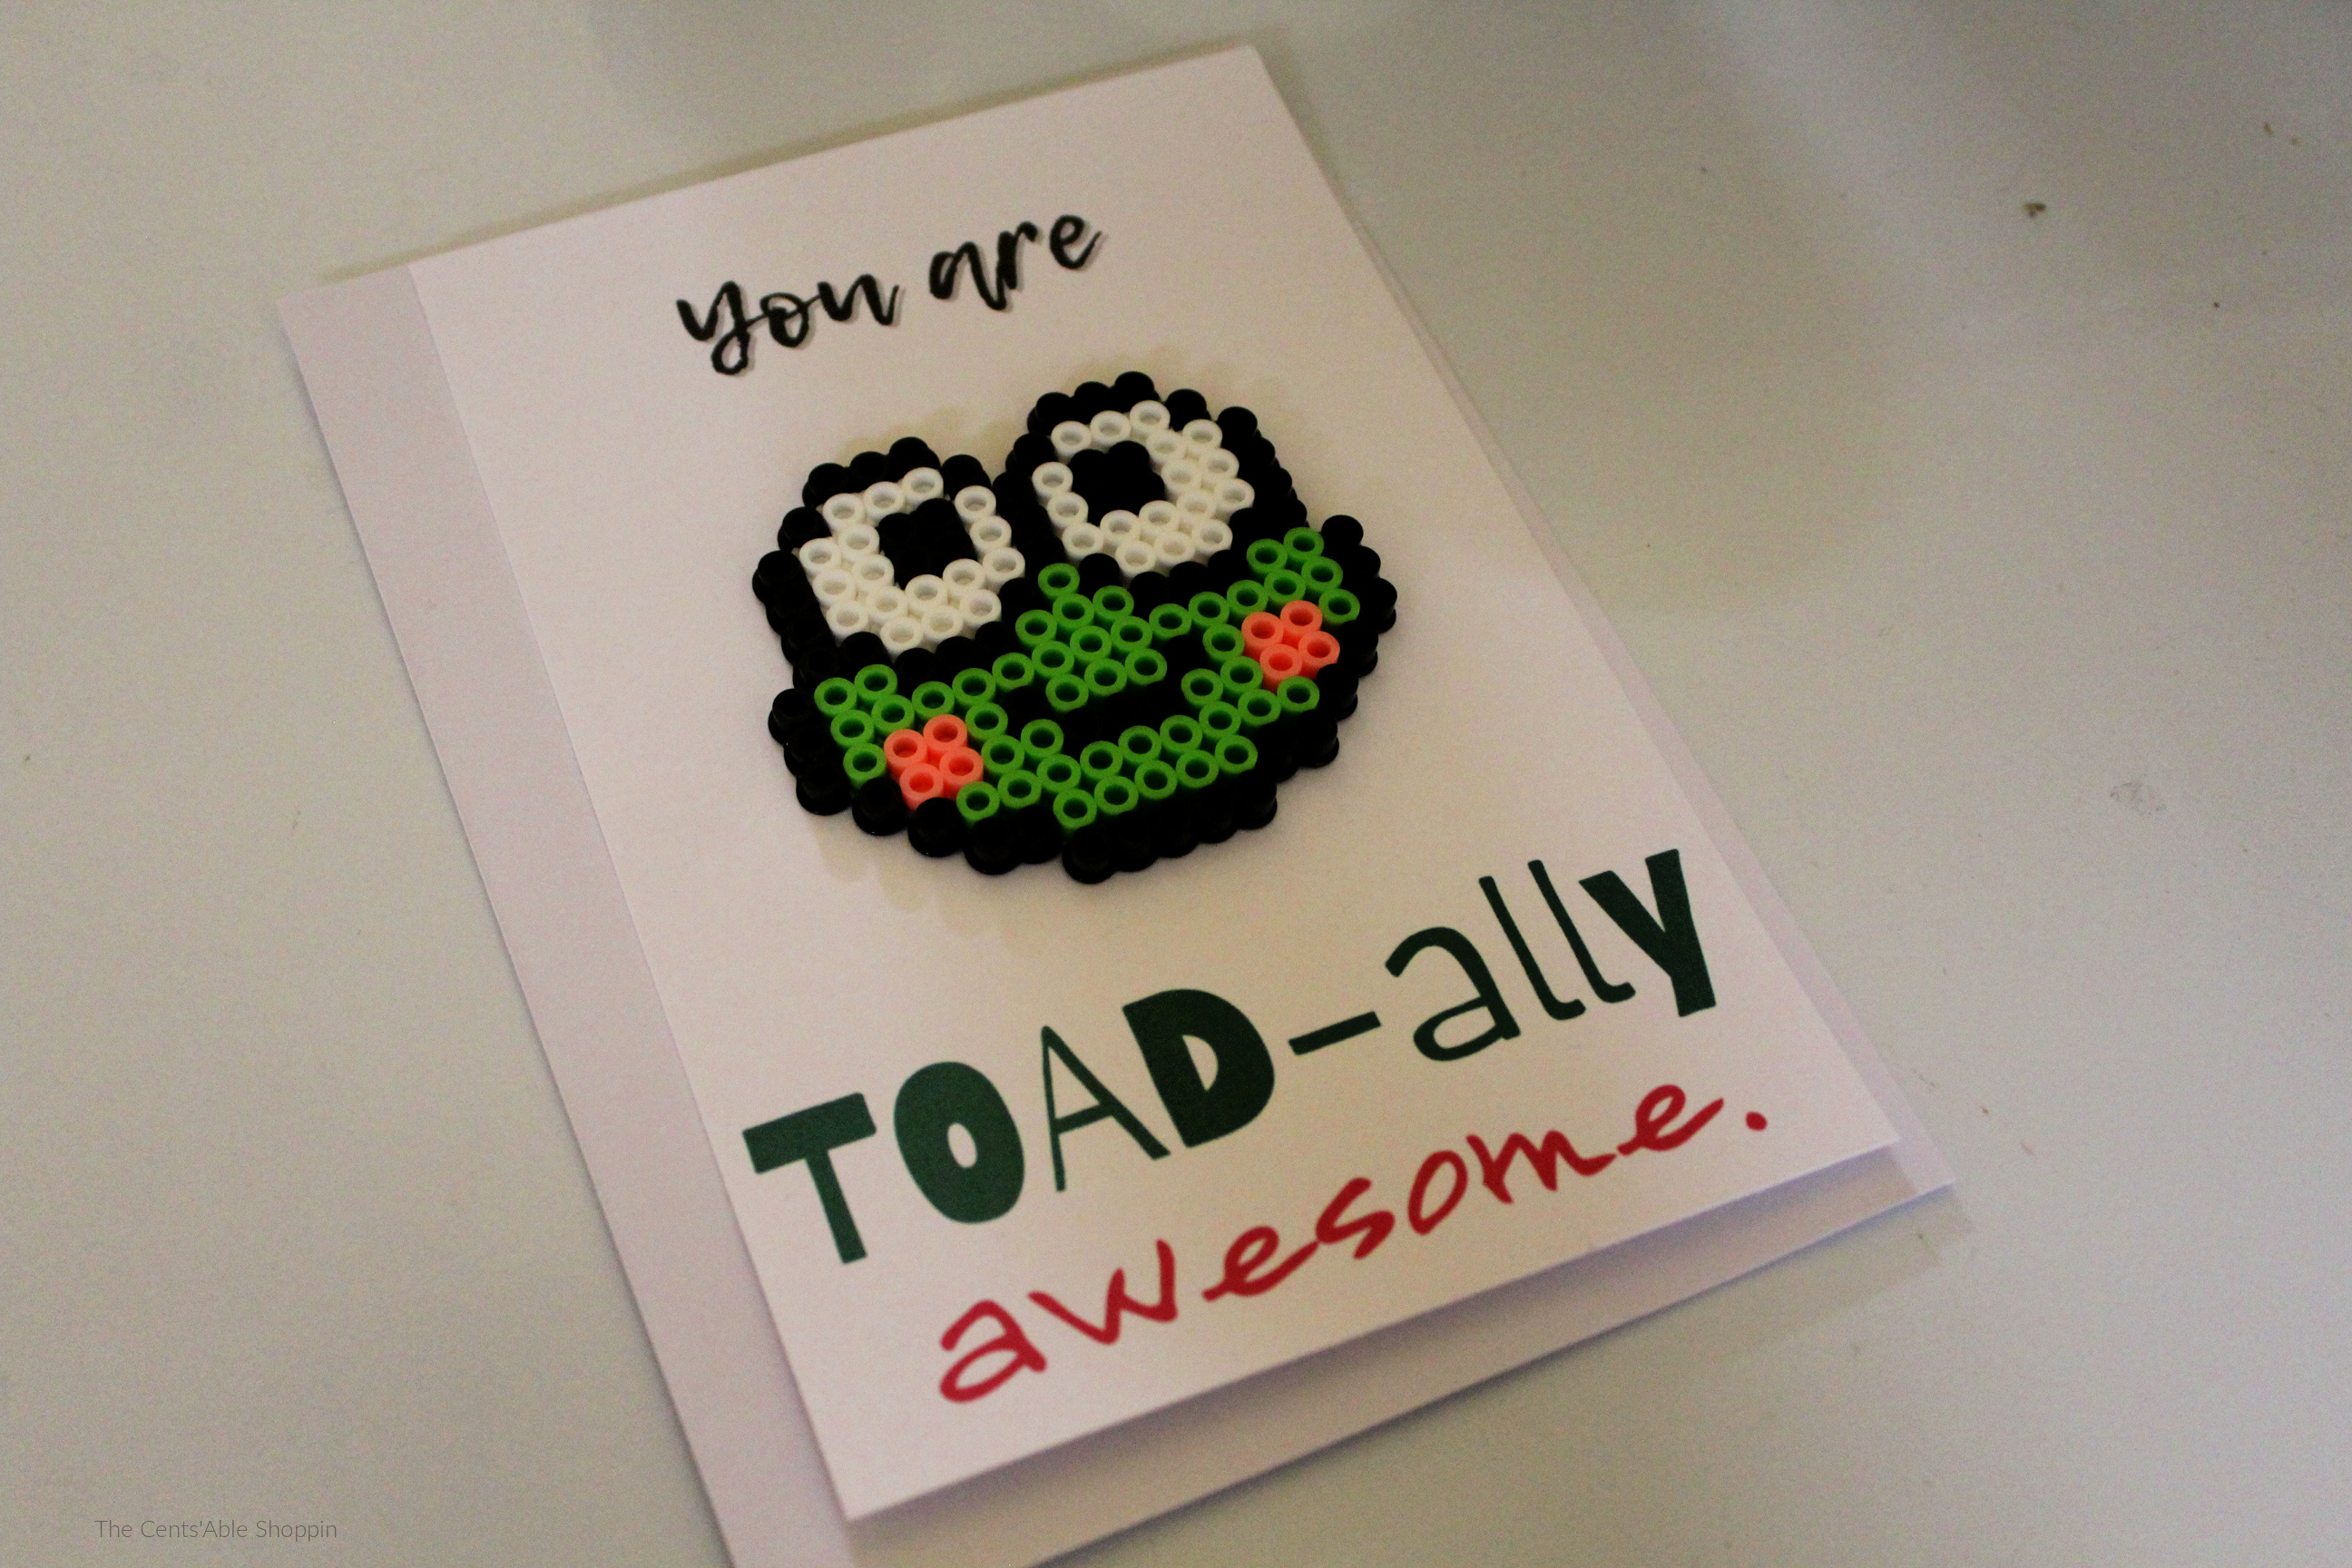 TOAD-ally awesome